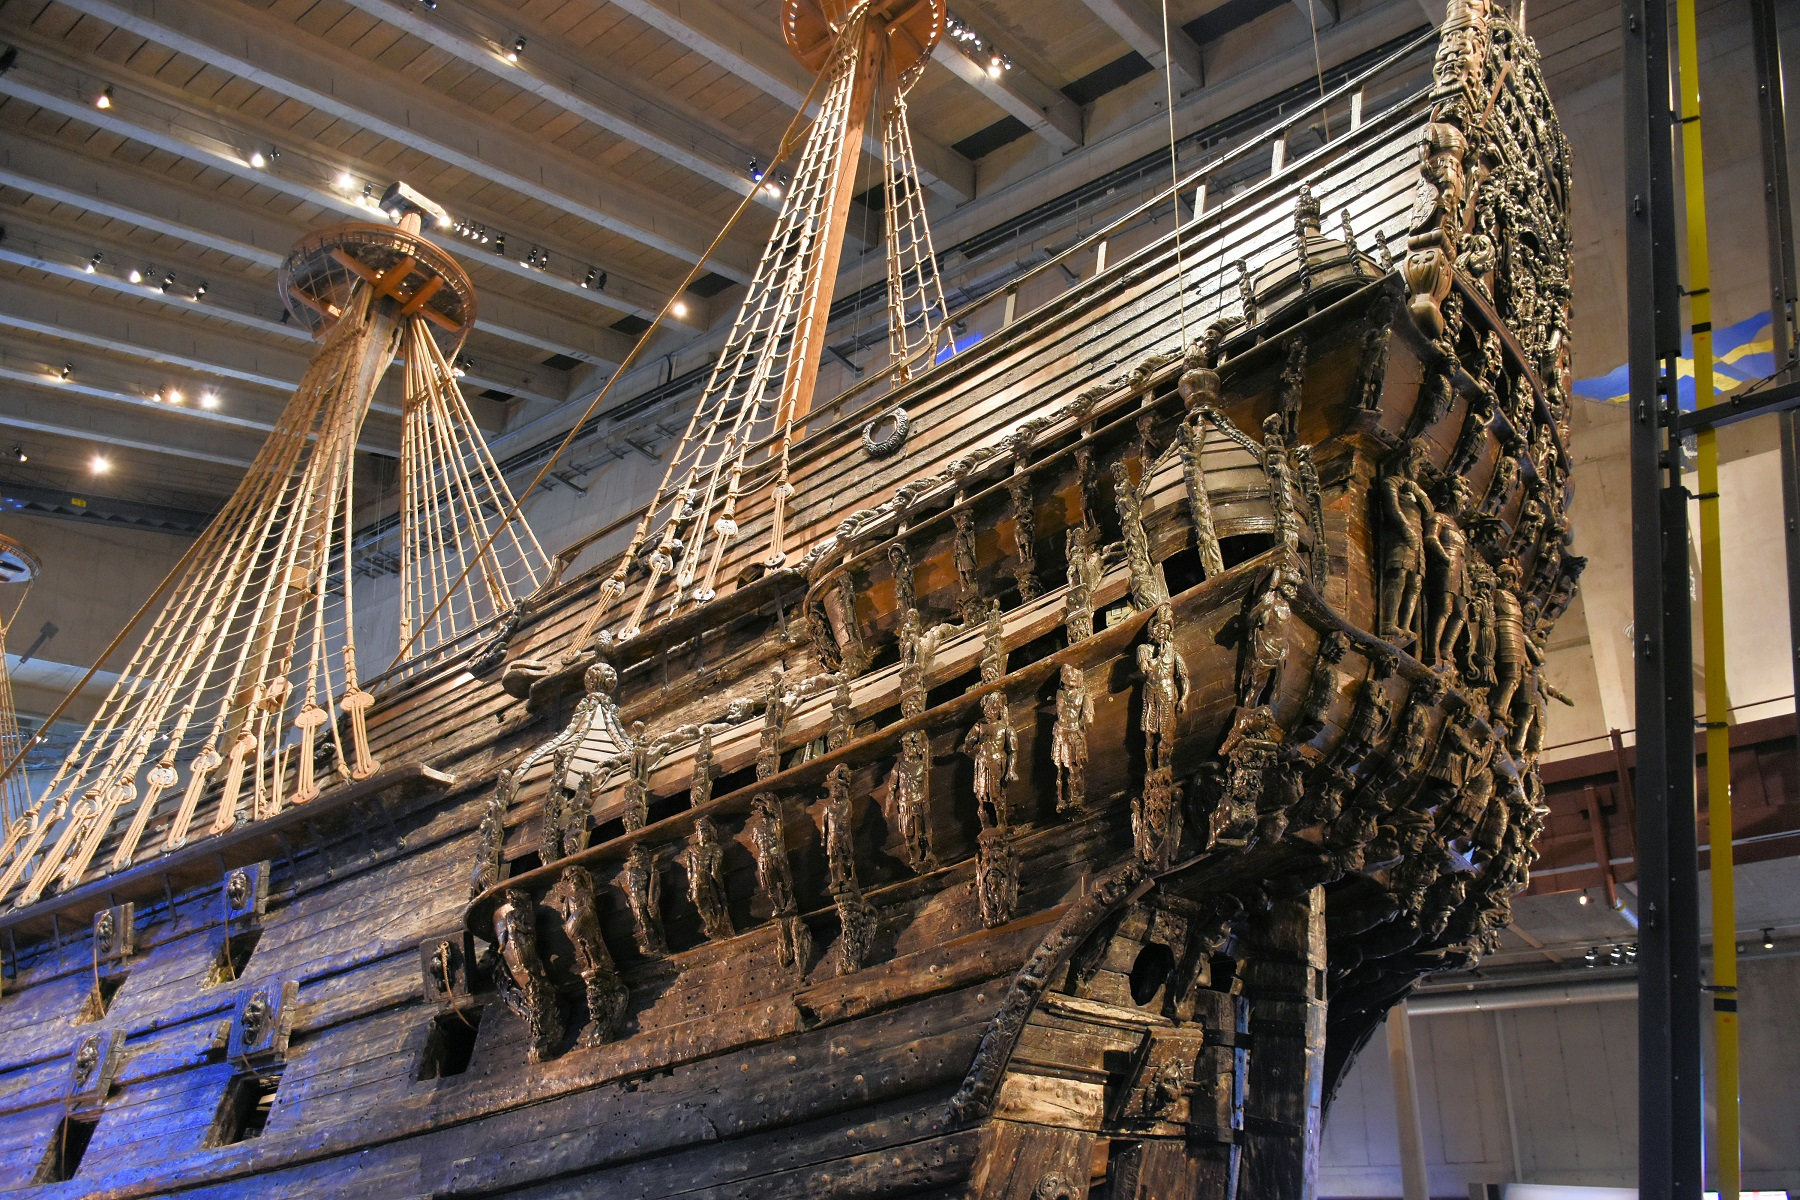 The amazingly well-preserved Vasa in her own museum in Stockholm. The ship sank 15 minutes into her maiden voyage in 1628. The beauty and power of the ship were unrivalled for her time.Unfortunately, the ship should have been 1 m (3.2 ft) wider.